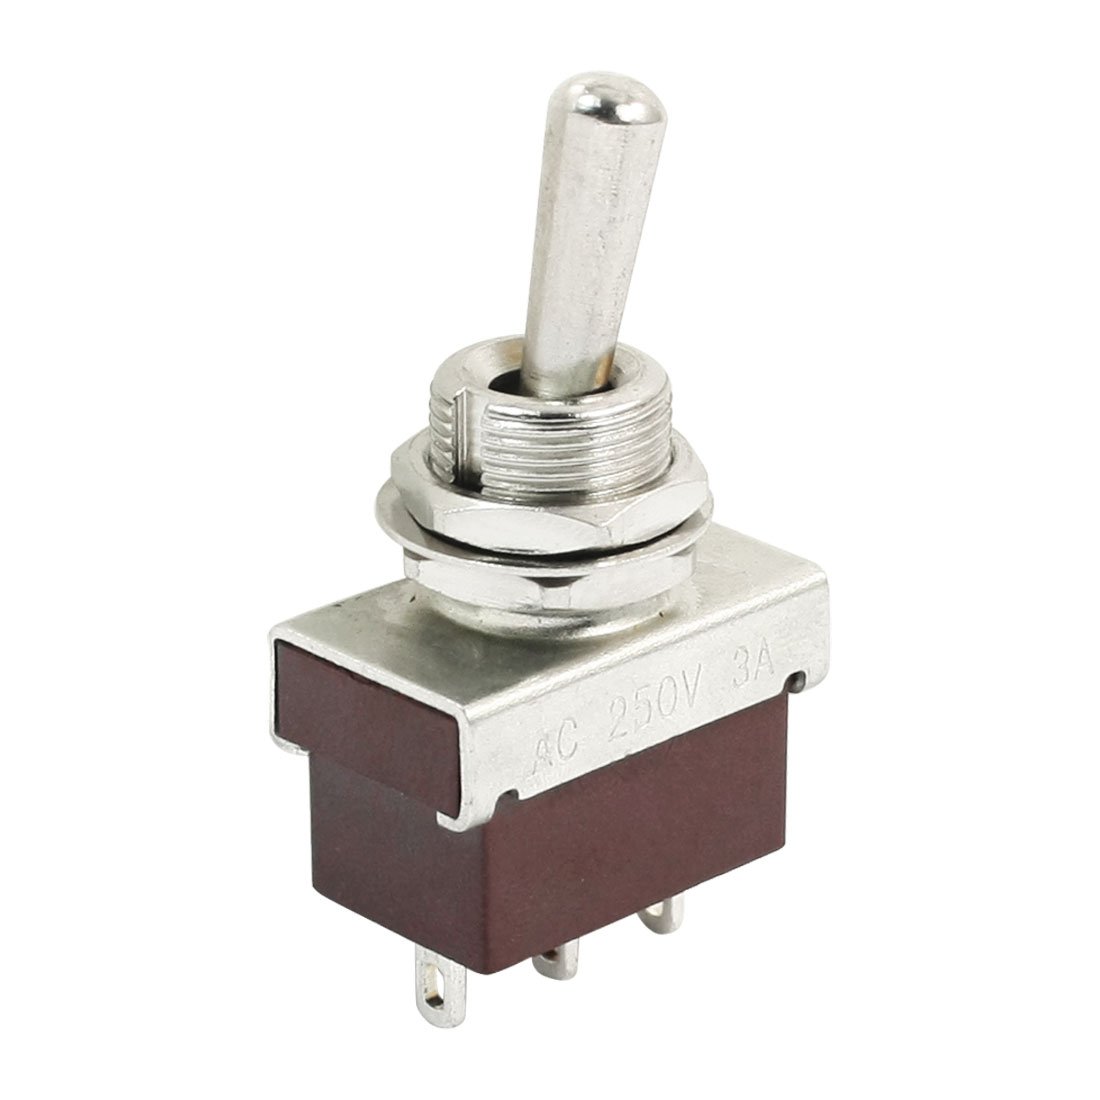 AC250V 3A ON/ON 2 Positions SPDT Latching Toggle Switch